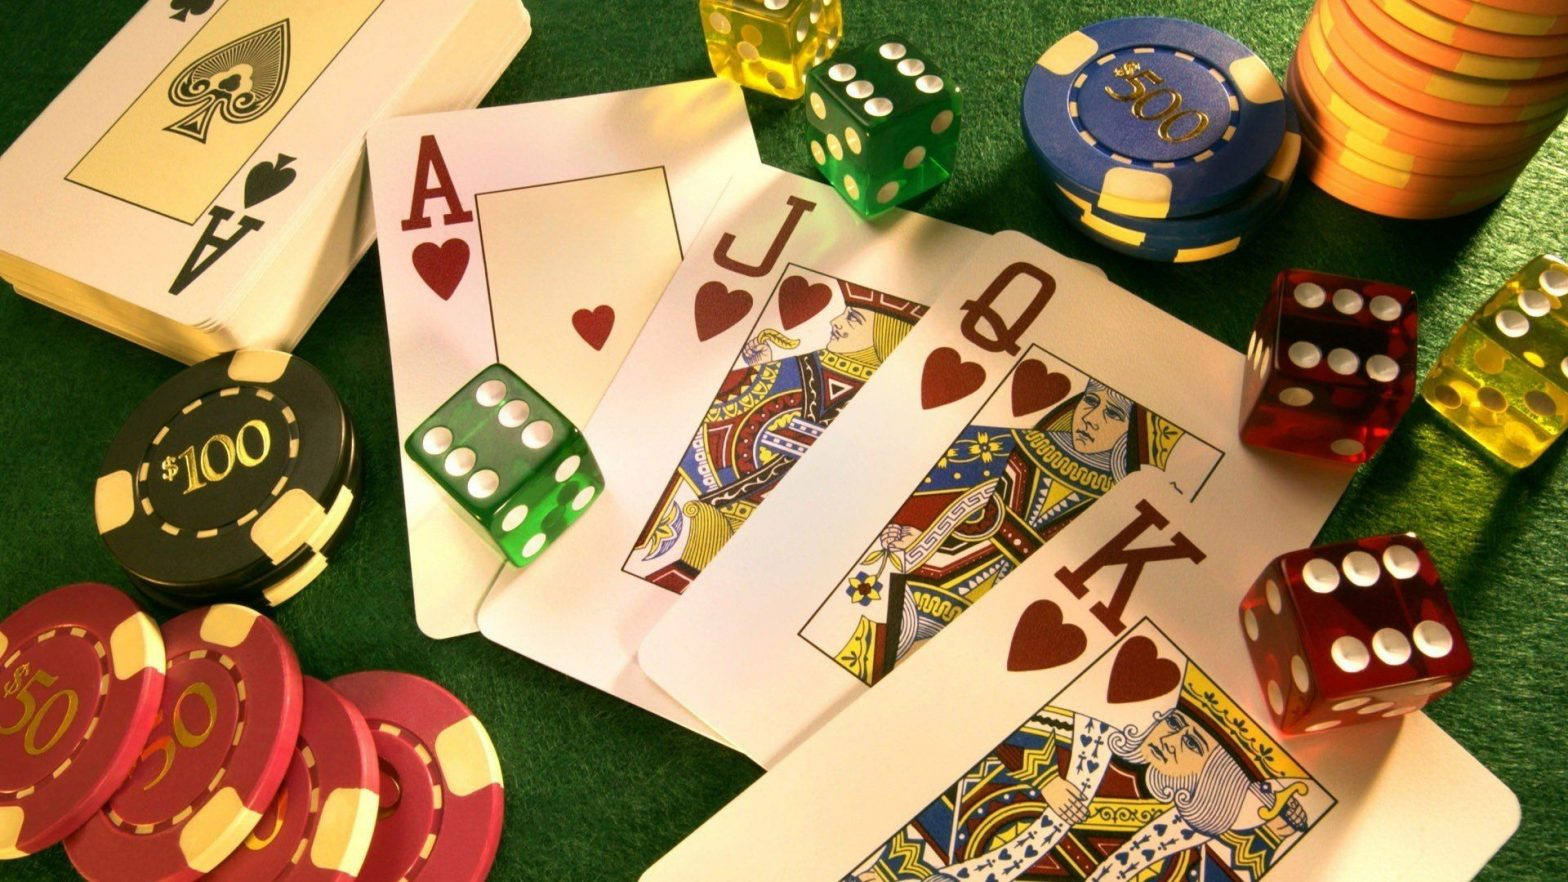 Look Ma, You Can Truly Build A Bussiness With Online Casino